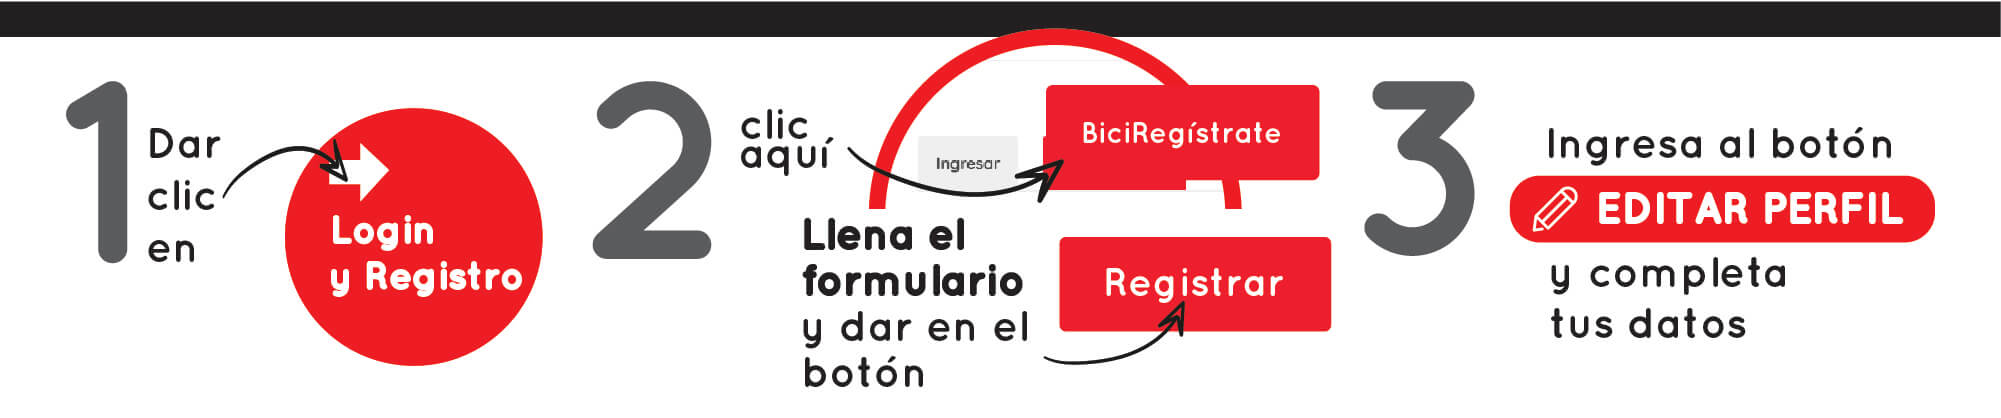 BiciRegistro.co